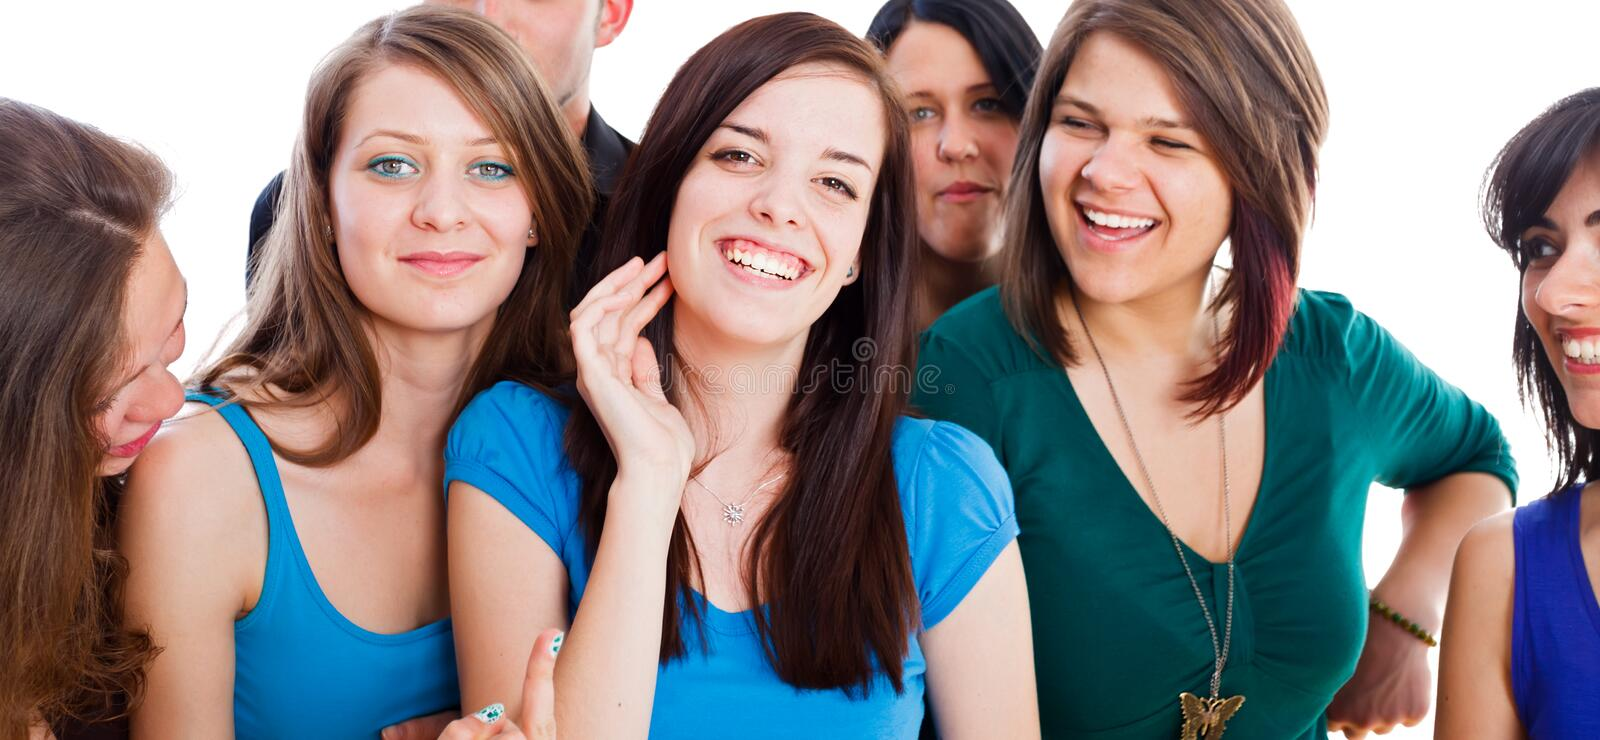 Beautiful People. Group of beautiful people together smiling and enjoying their time stock photography